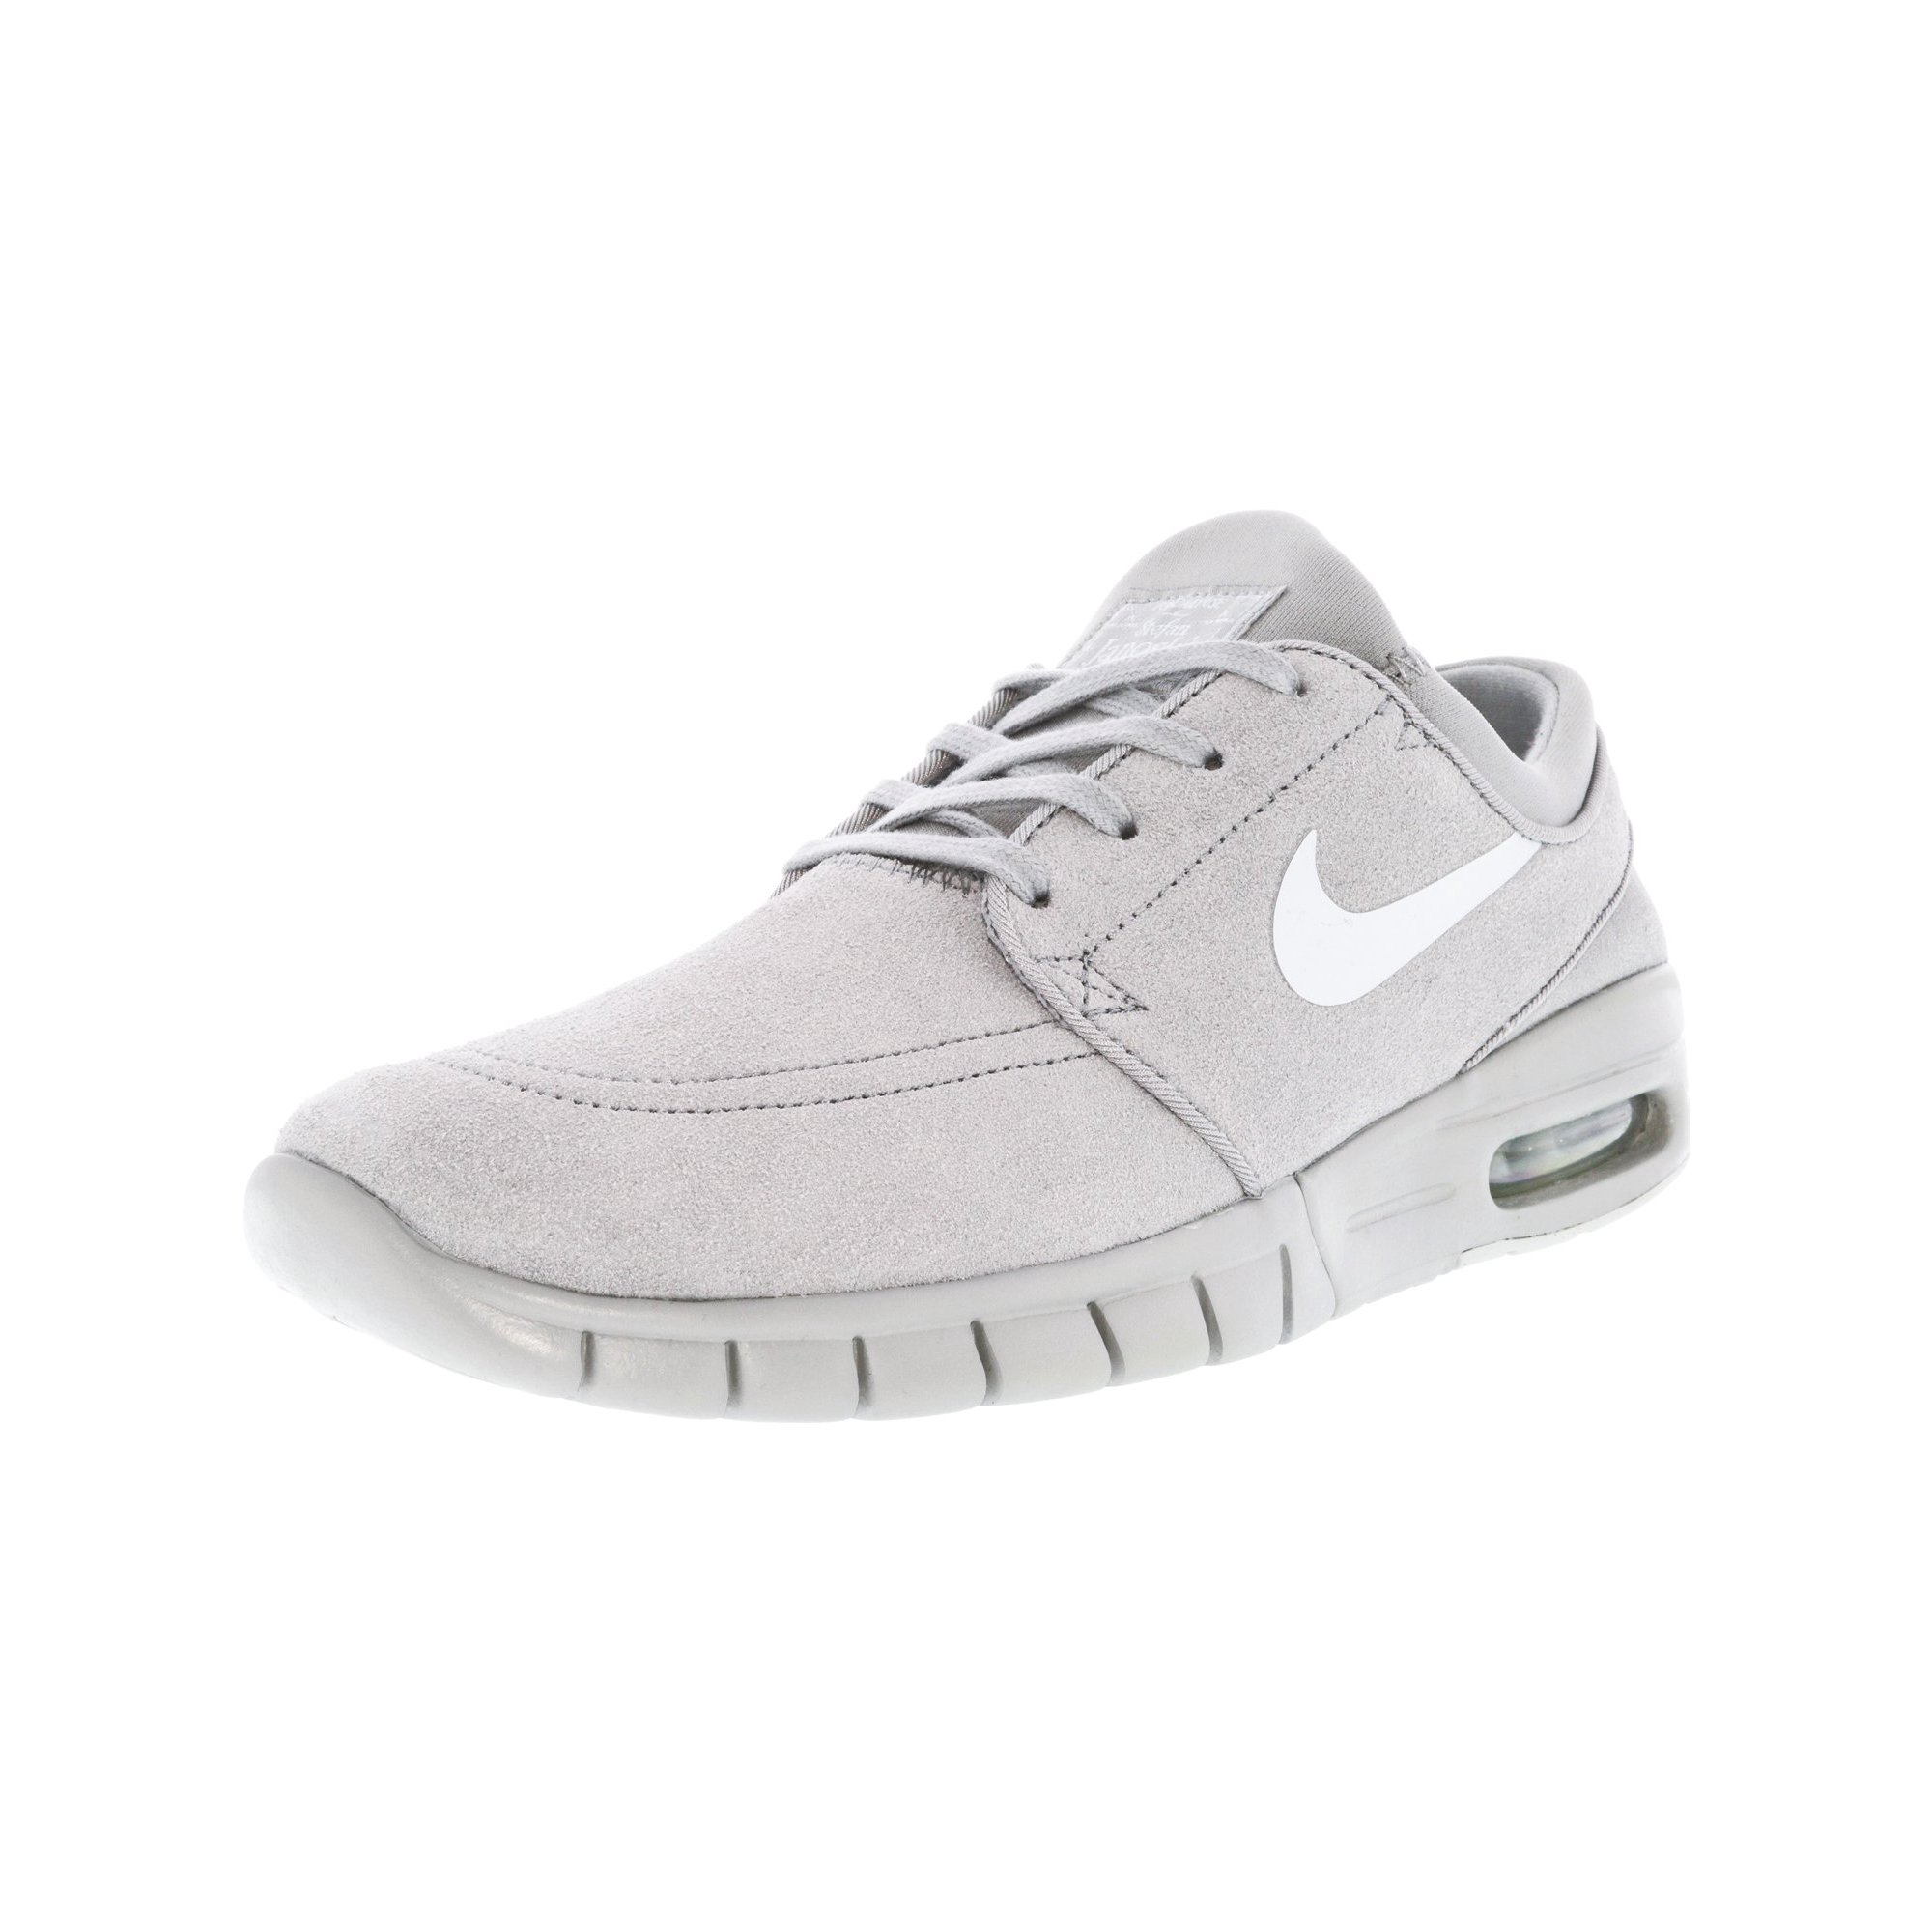 41c0e68a0f2 Nike Men s Stefan Janoski Max L Black   Green Glow White Ankle-High Fashion  Sneaker - 9M